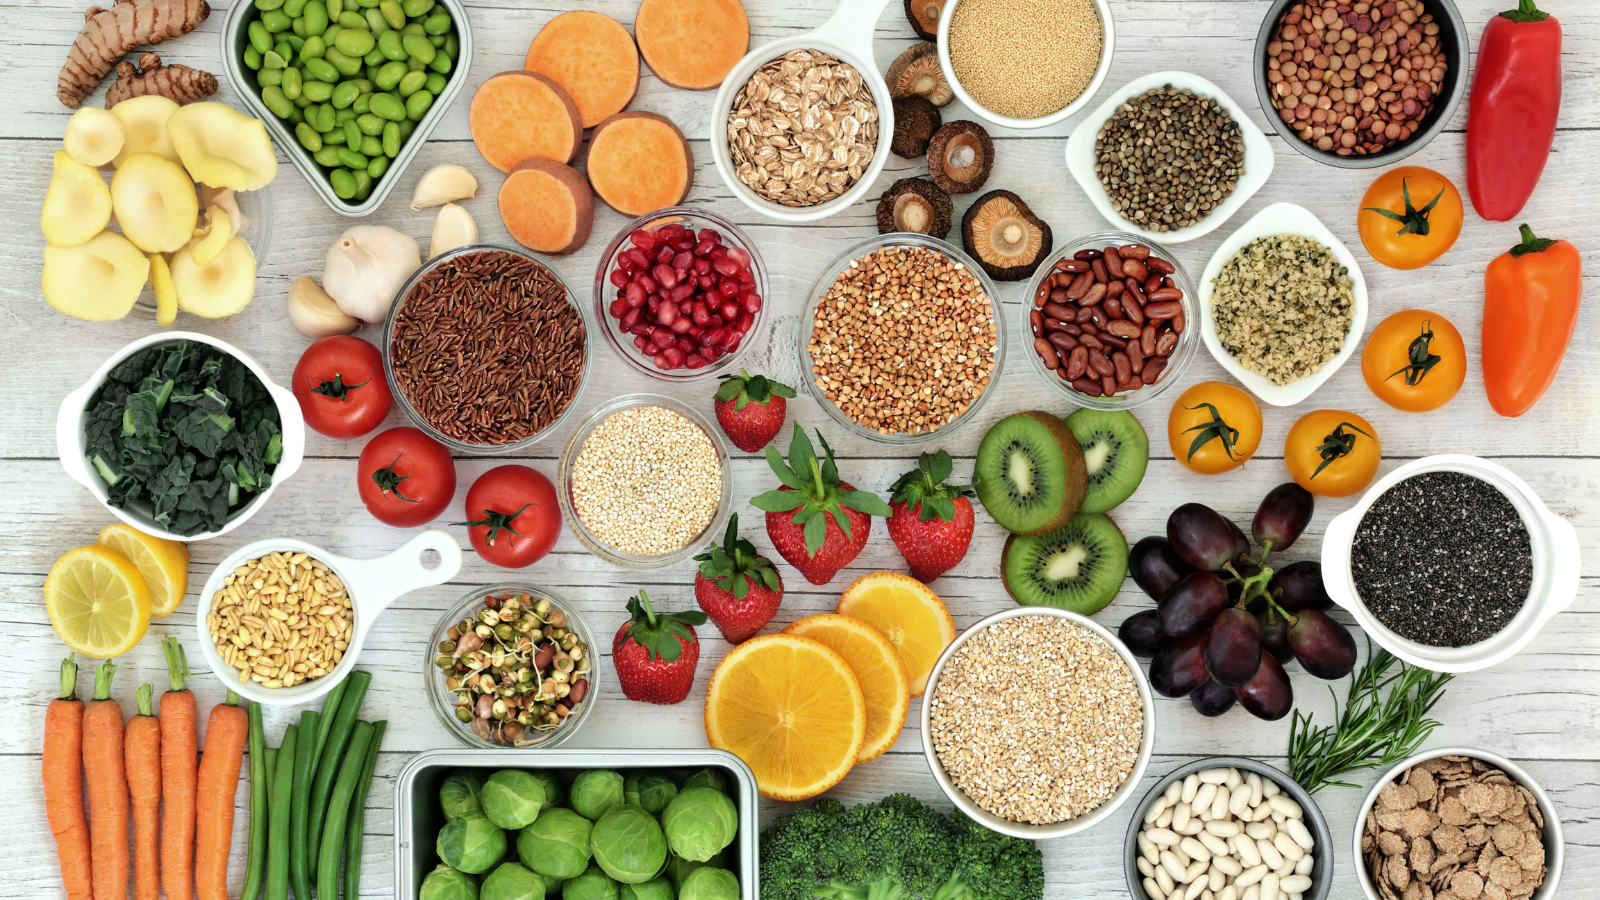 Fresh superfood concept with fruit, vegetables, grains, cereals, pulses, seeds, herbs and spice for a plant-based diet. Foods high in fiber, antioxidants, smart carbs, minerals and vitamins.